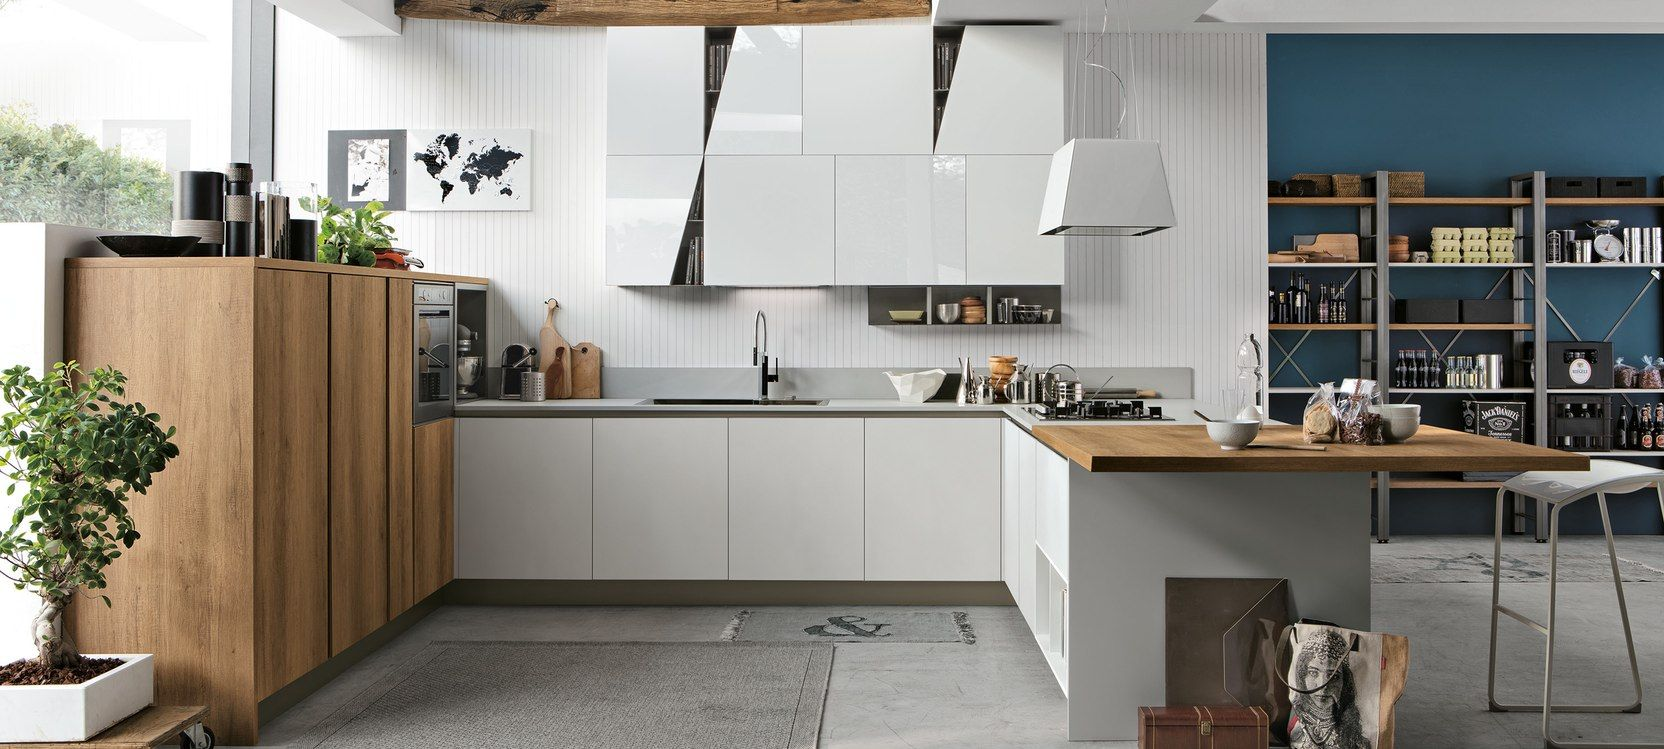 Stosa cucine - Infinity/Diagonal | Kitchen production factory ...